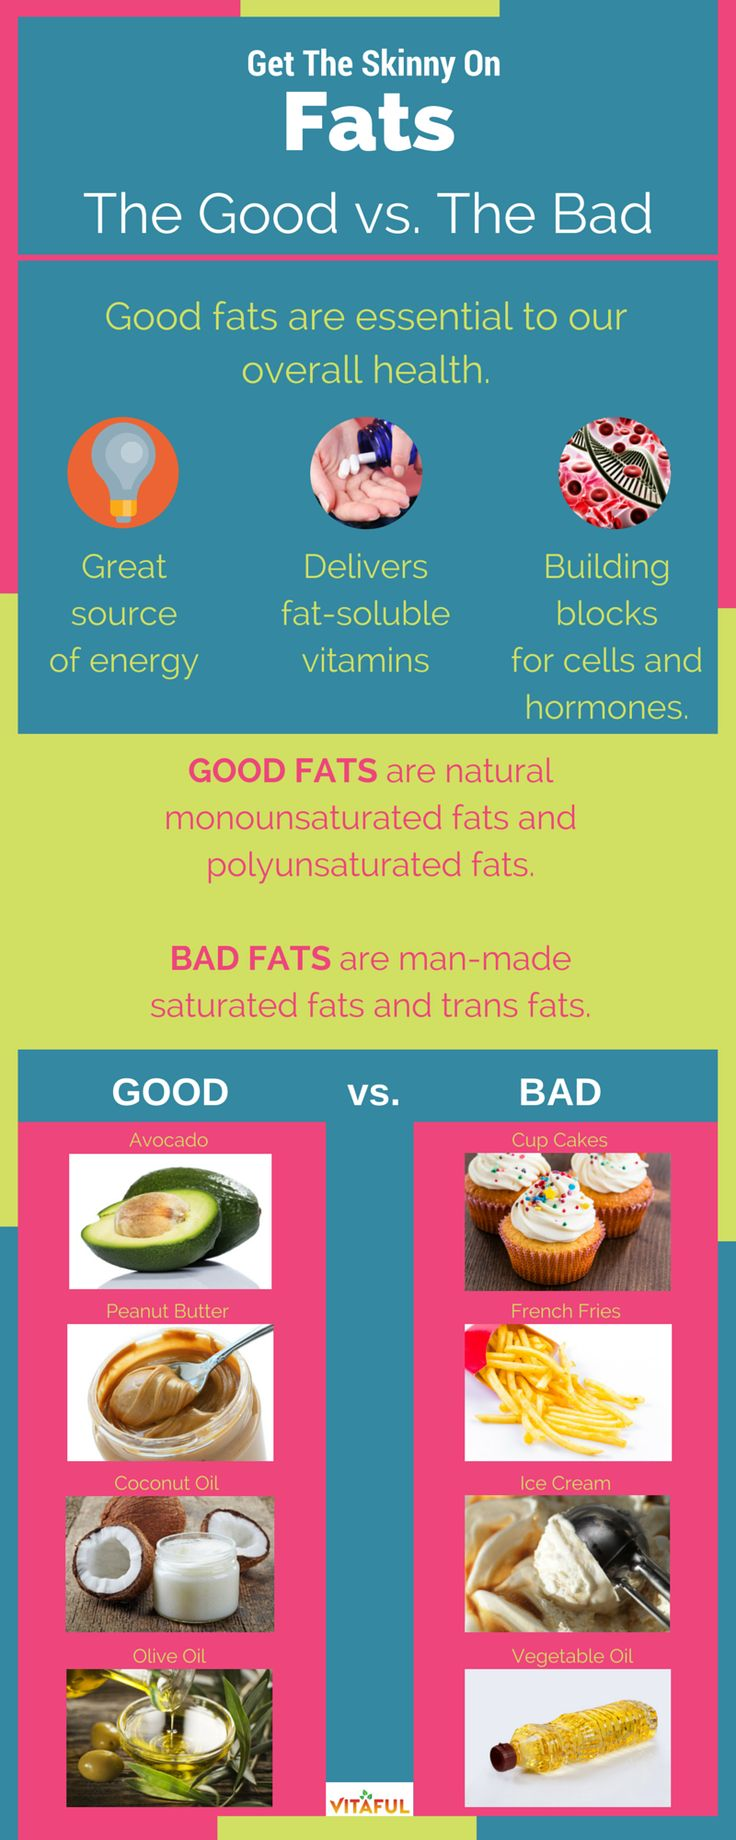 Food Facts: Learn the Difference Between Good Fats vs Bad Fats. Also Includes a Healthy Foods List compared to a Junk Food List.